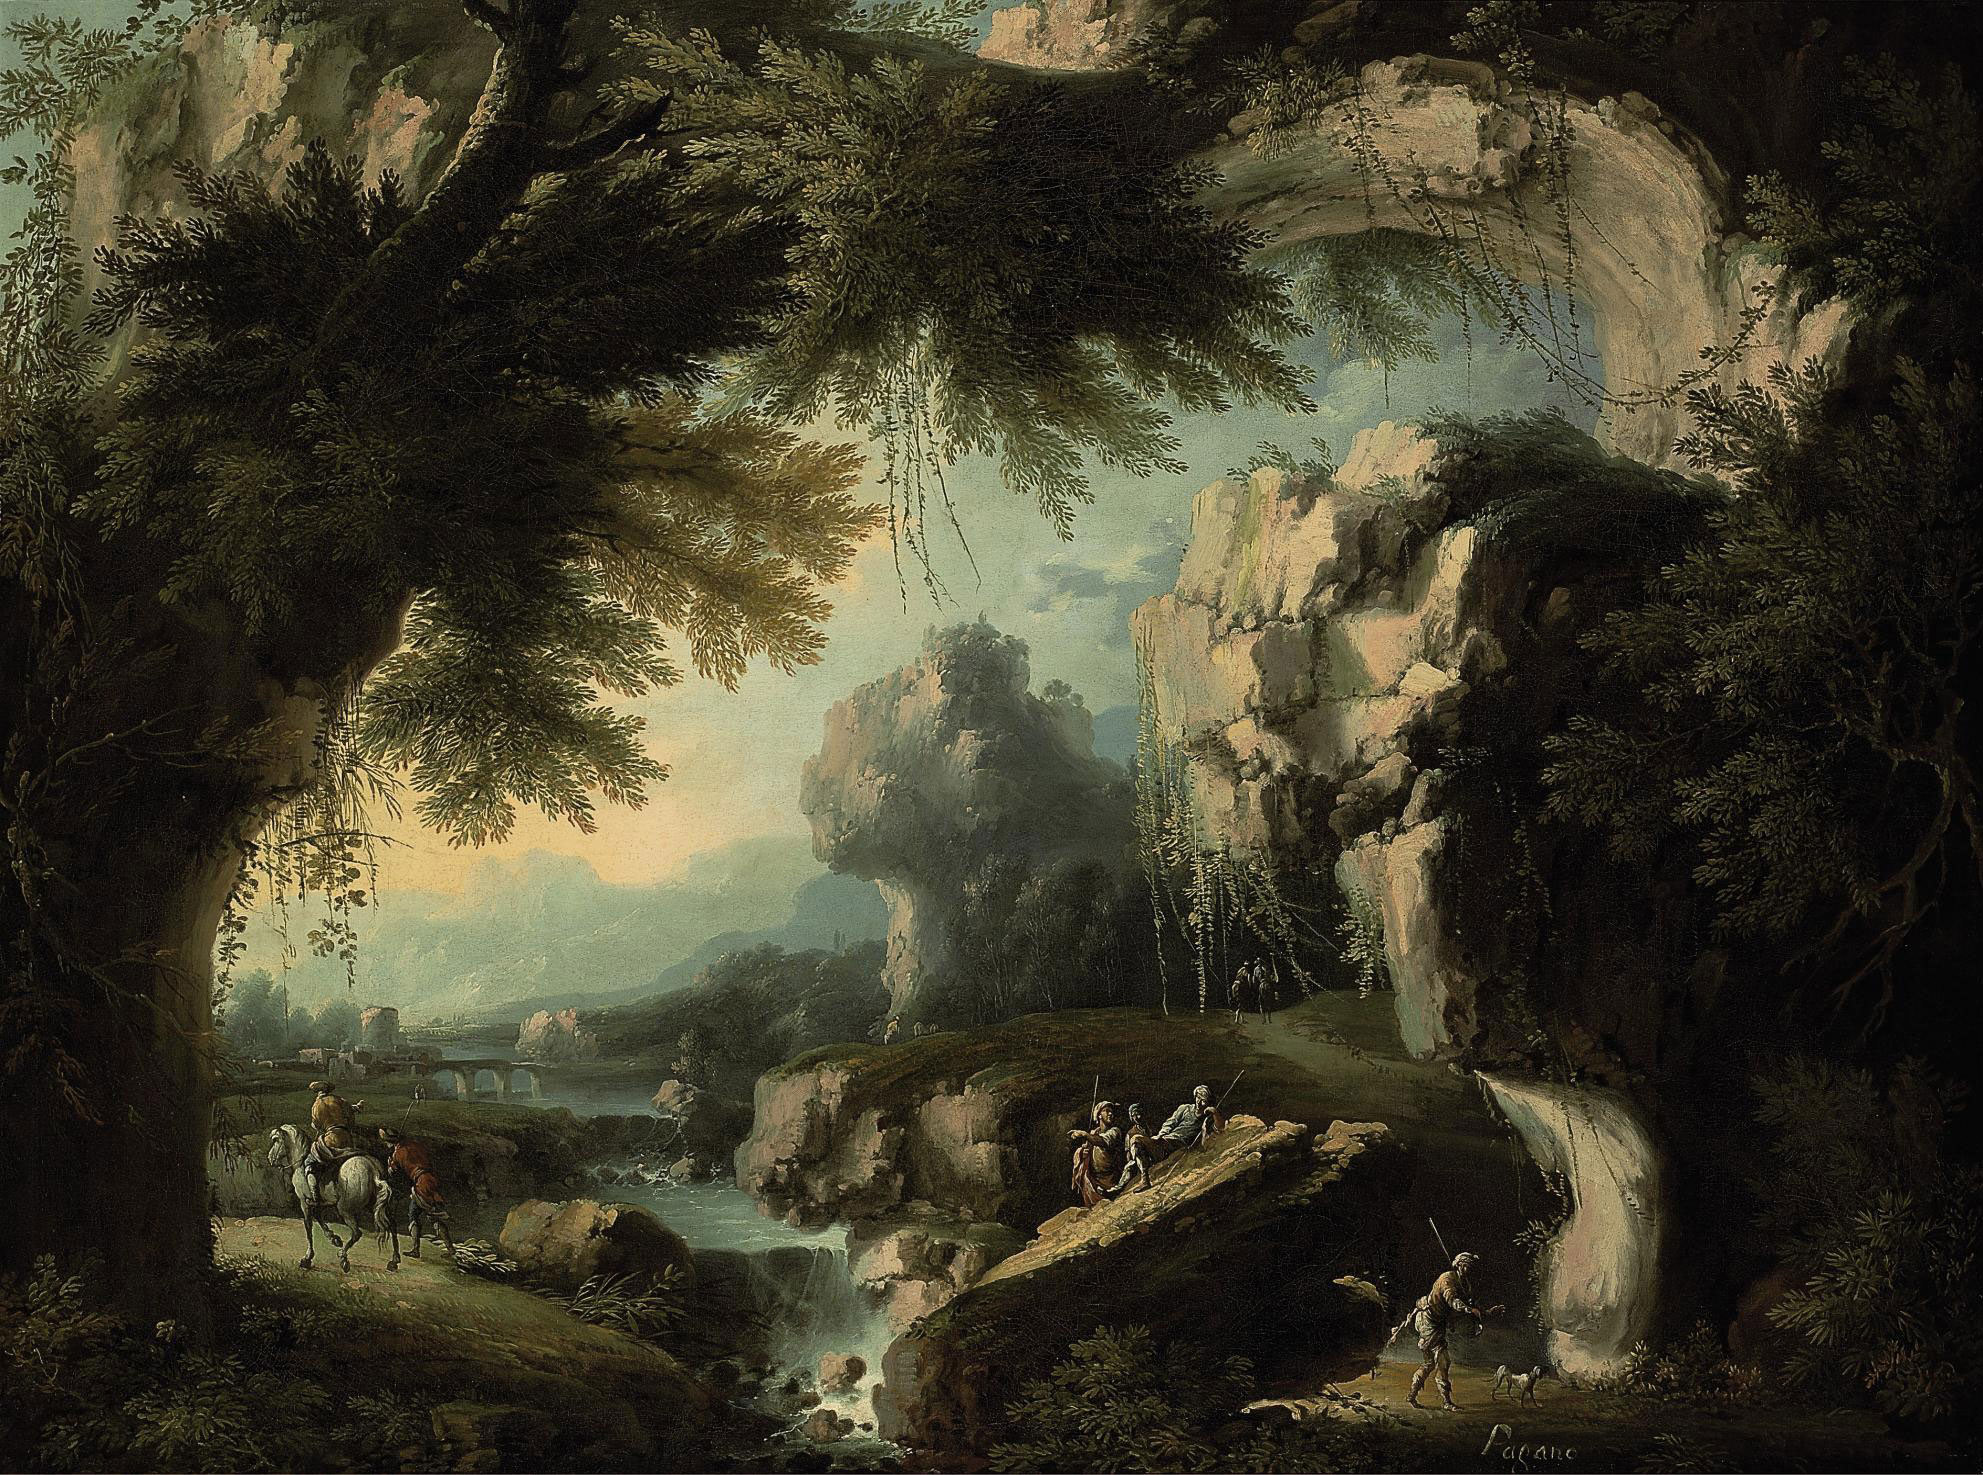 A classical landscape with a waterfall and figures